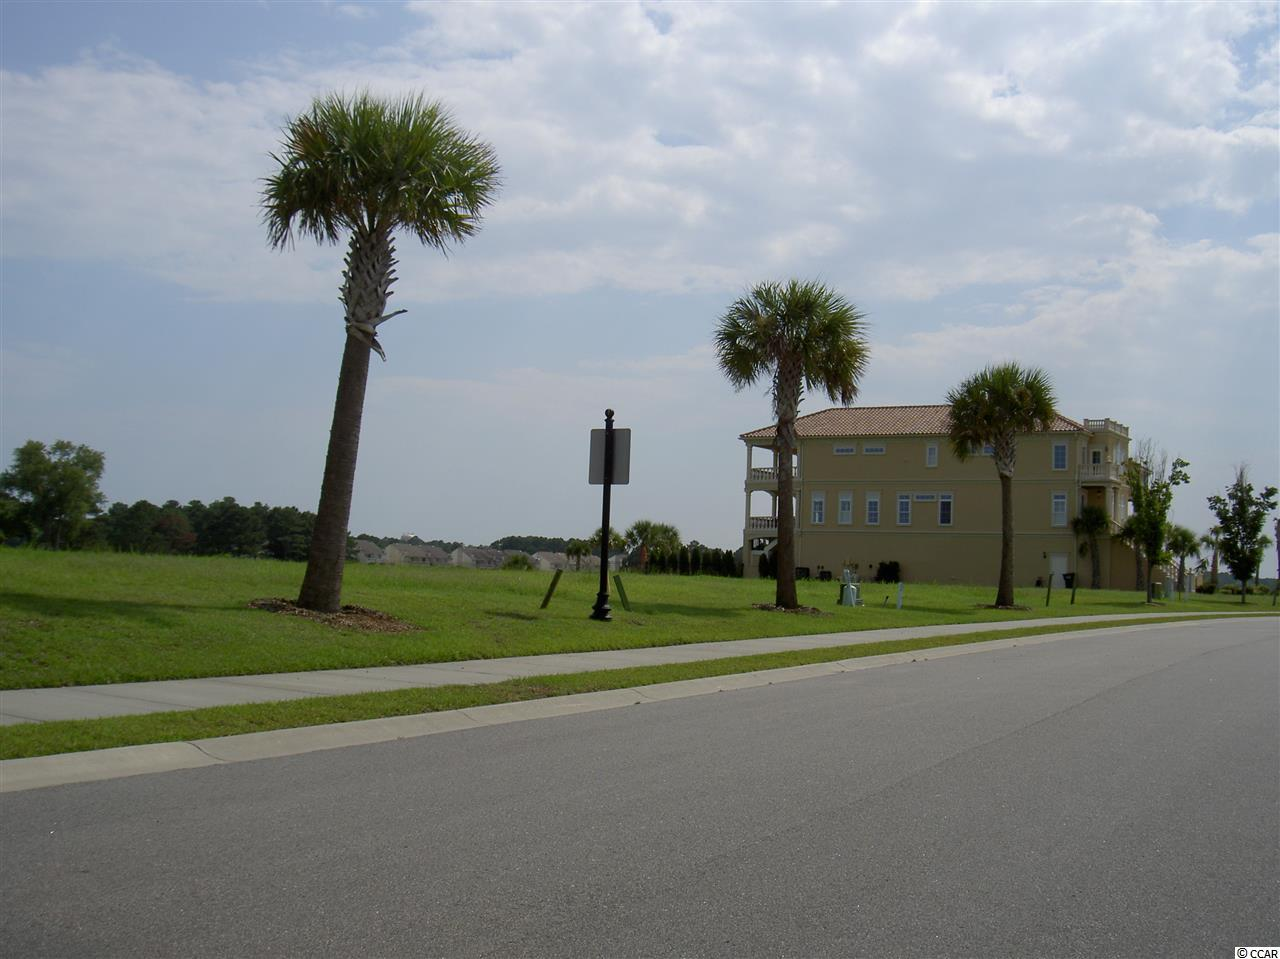 Lot 38 Waterway Palms Plantation, Myrtle Beach, SC 29575